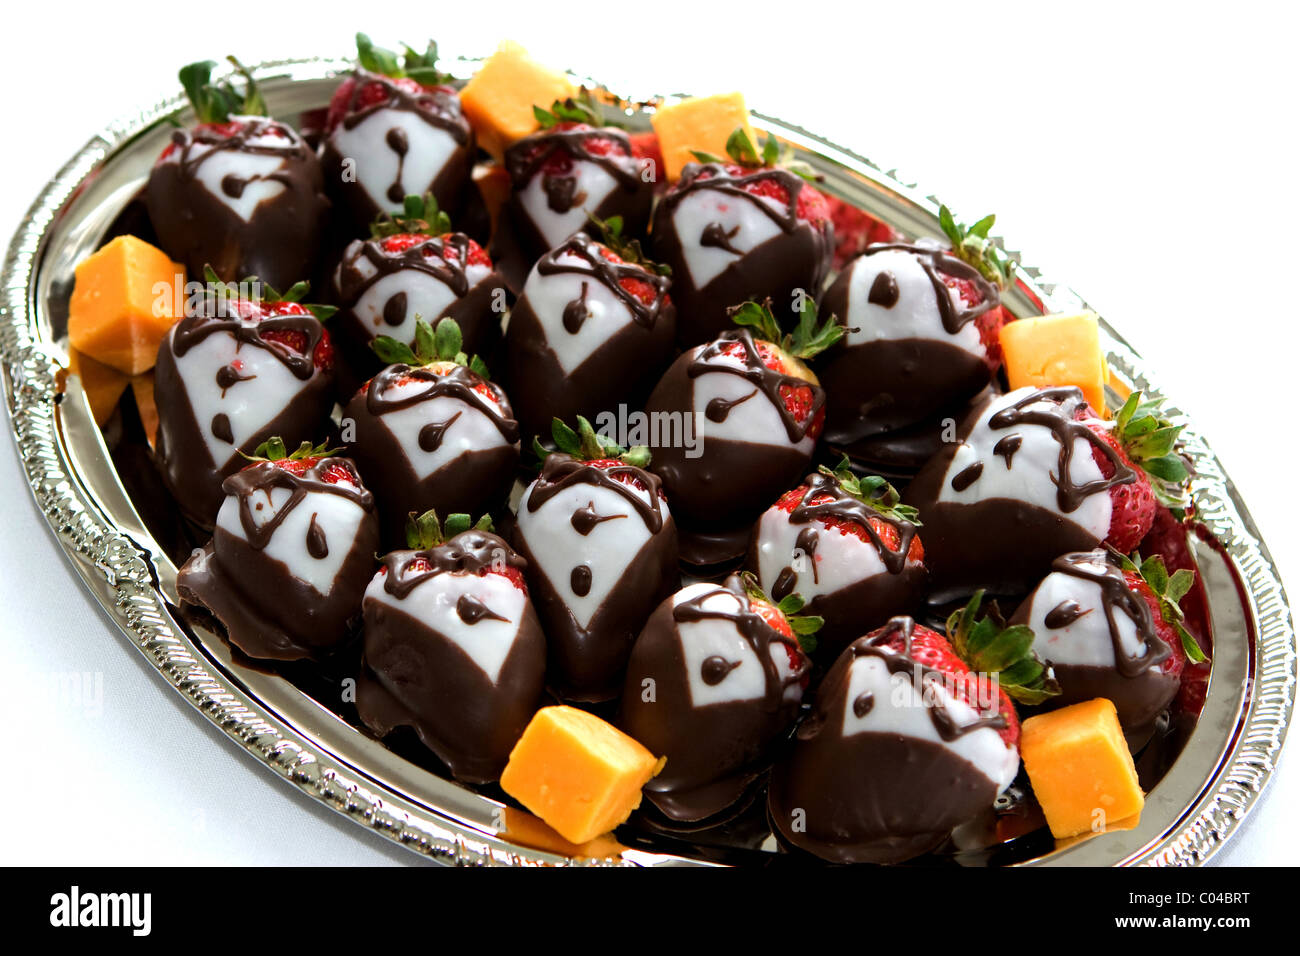 A platter of strawberries are decorated in dark and white chocolate to look like they are dressed in tuxedos. - Stock Image